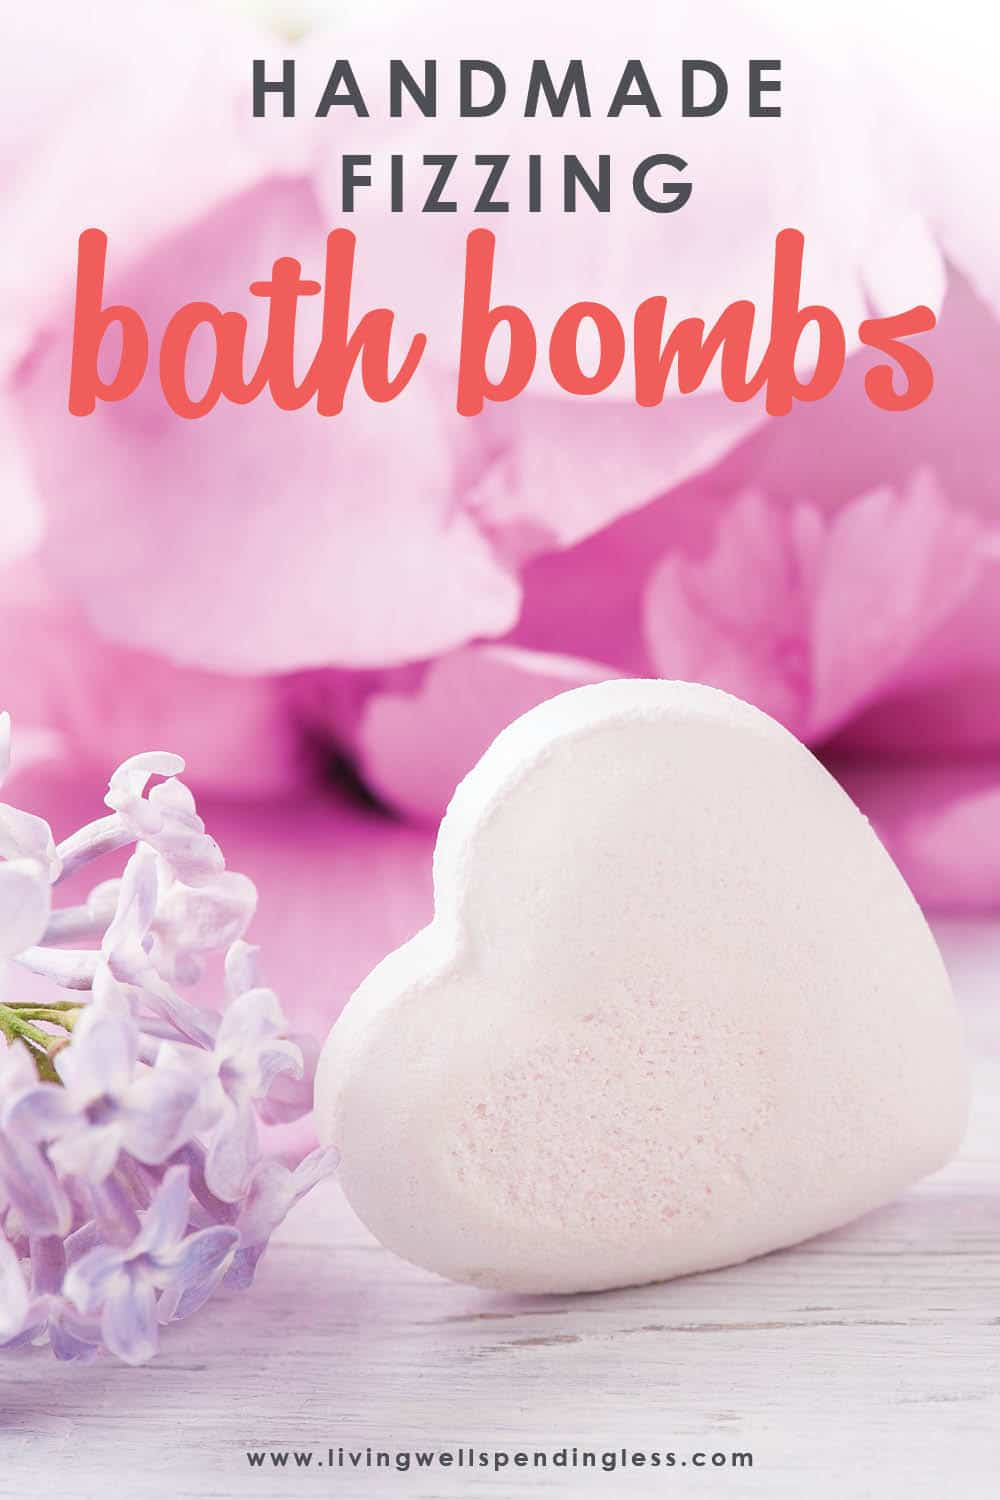 These handmade fizzing bath bombs are a breeze to make for the kids, and are a fantastic handmade gift for friends, neighbors, or teachers! Don't miss this detailed tutorial for step-by-step instructions on how to make your own homemade bath bombs.